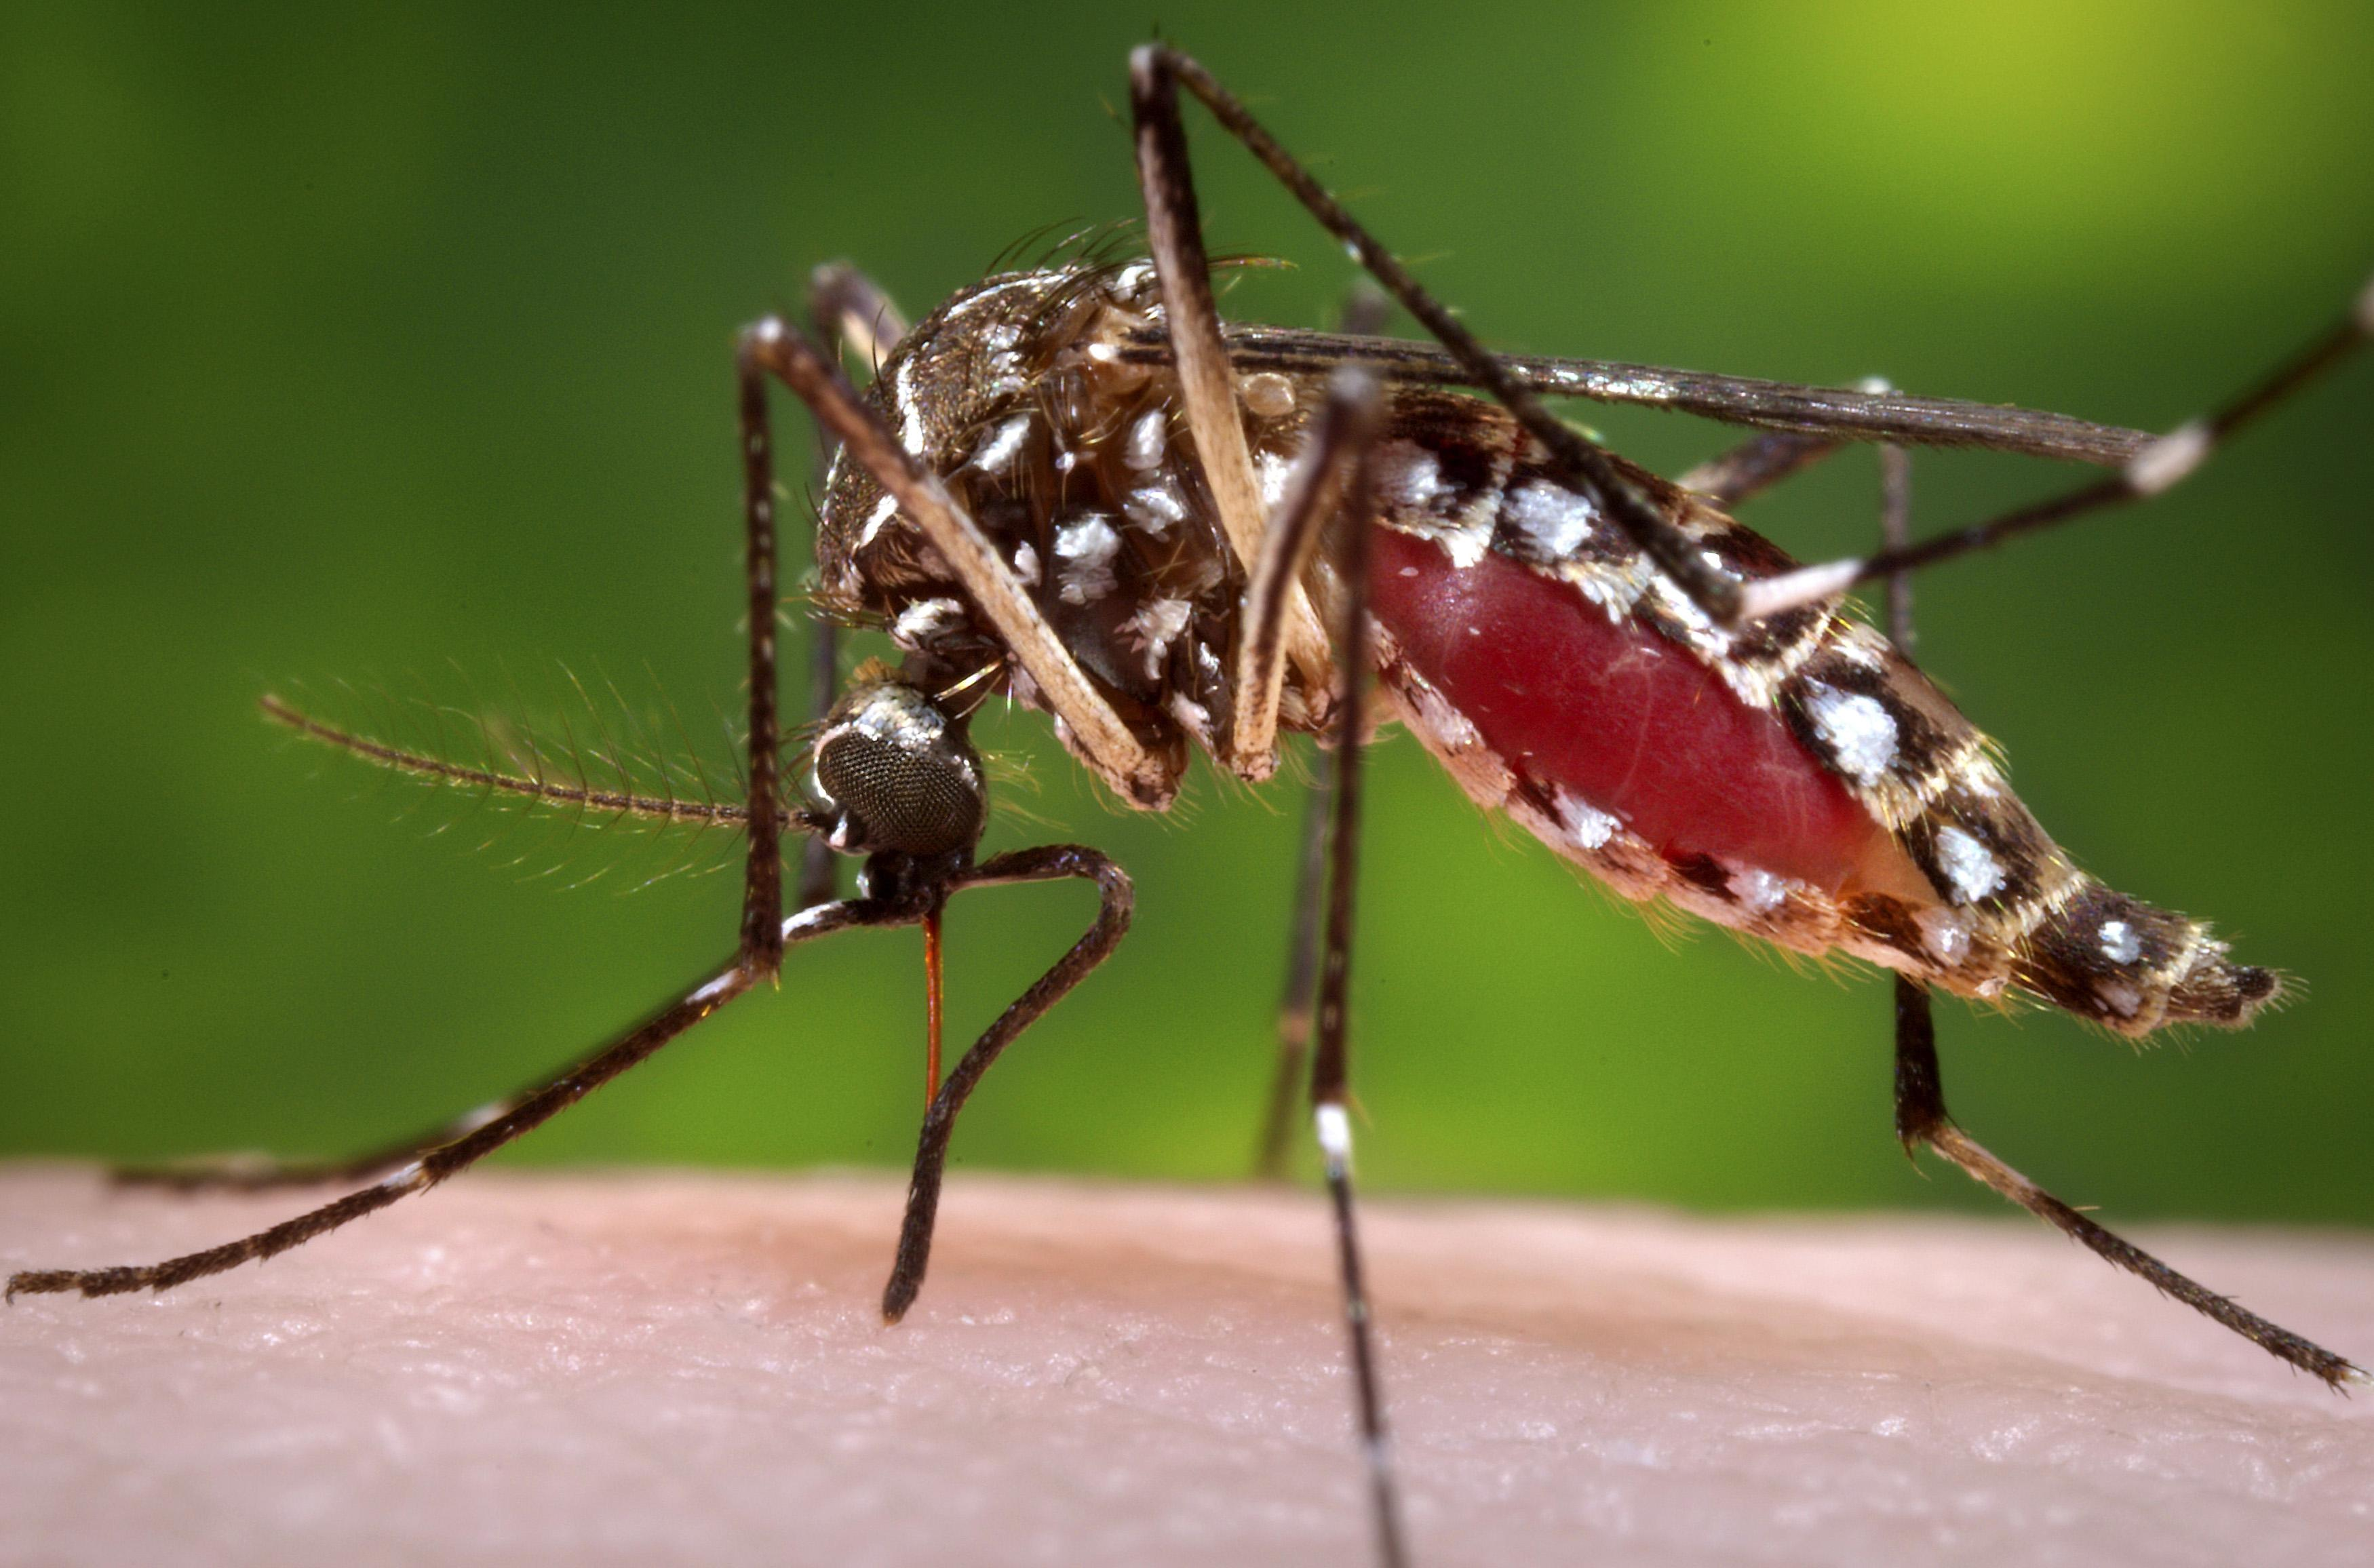 Mosquito aedes aegypti hembra. Foto: Reuters